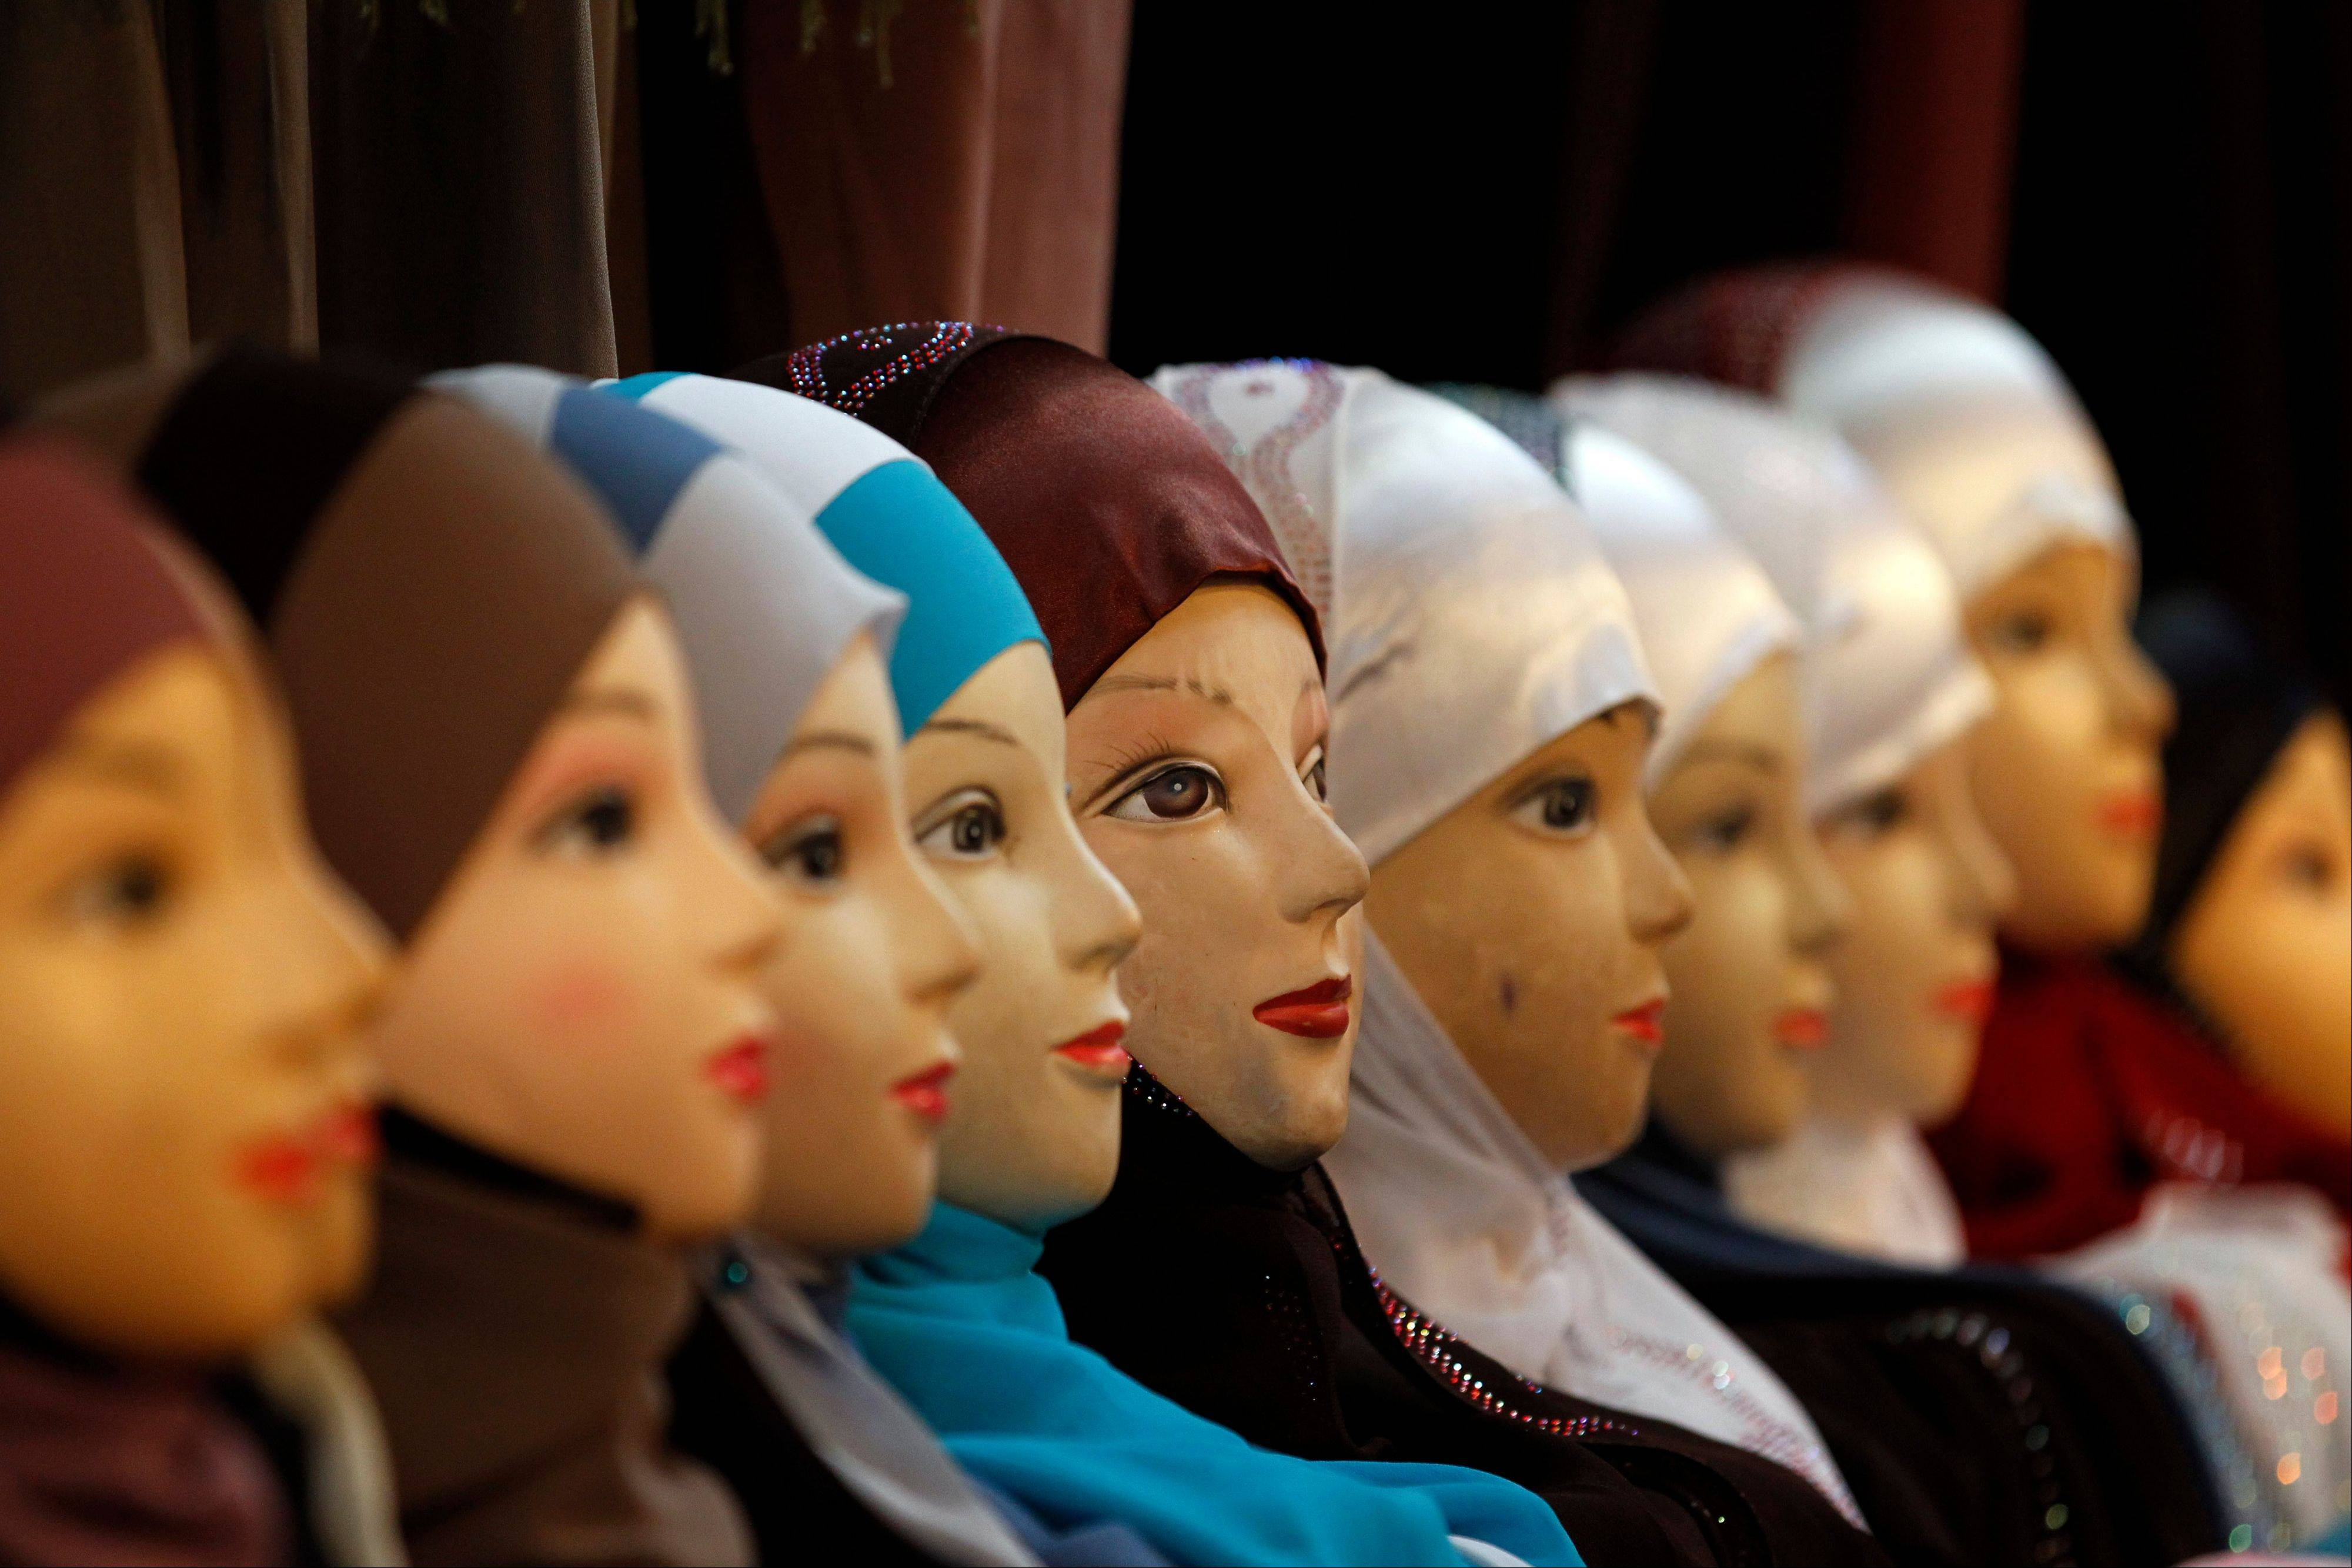 Mannequins with veils are seen on display at an exhibition hall for the Muslim World Fair in Le Bourget, outside Paris, in 2011. A British judge�s decision this week permitting a female Muslim defendant to wear a full face veil in court, but requiring her to remove it when giving evidence, has reignited a debate about Muslim veils that has flared across Europe.